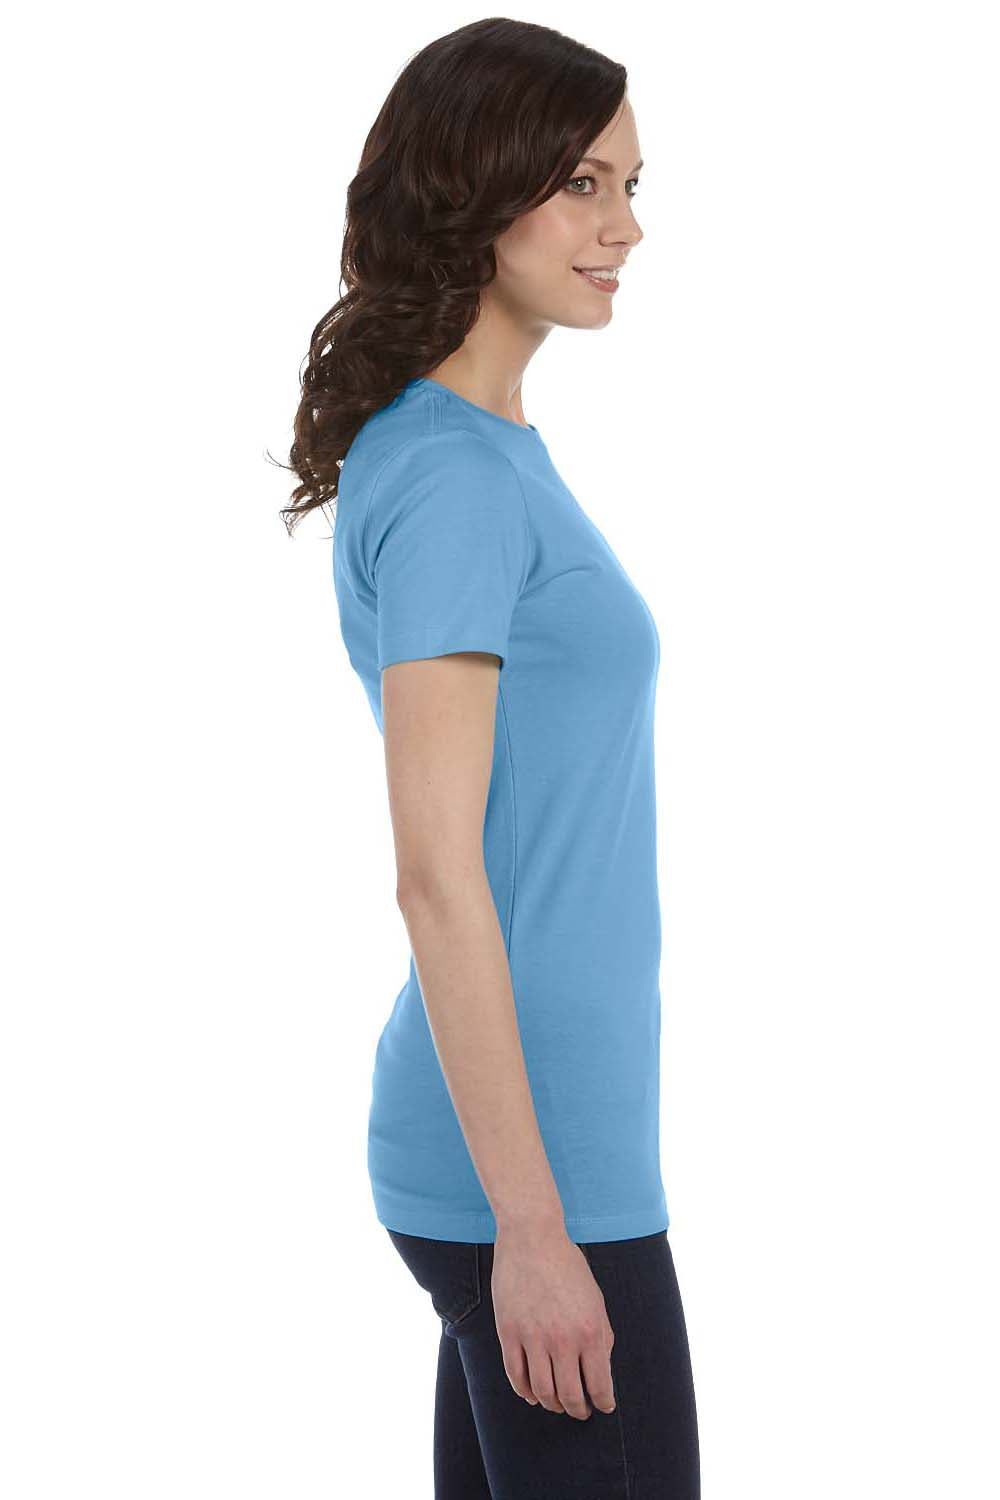 Bella + Canvas 6004 Womens The Favorite Short Sleeve Crewneck T-Shirt Ocean Blue Side